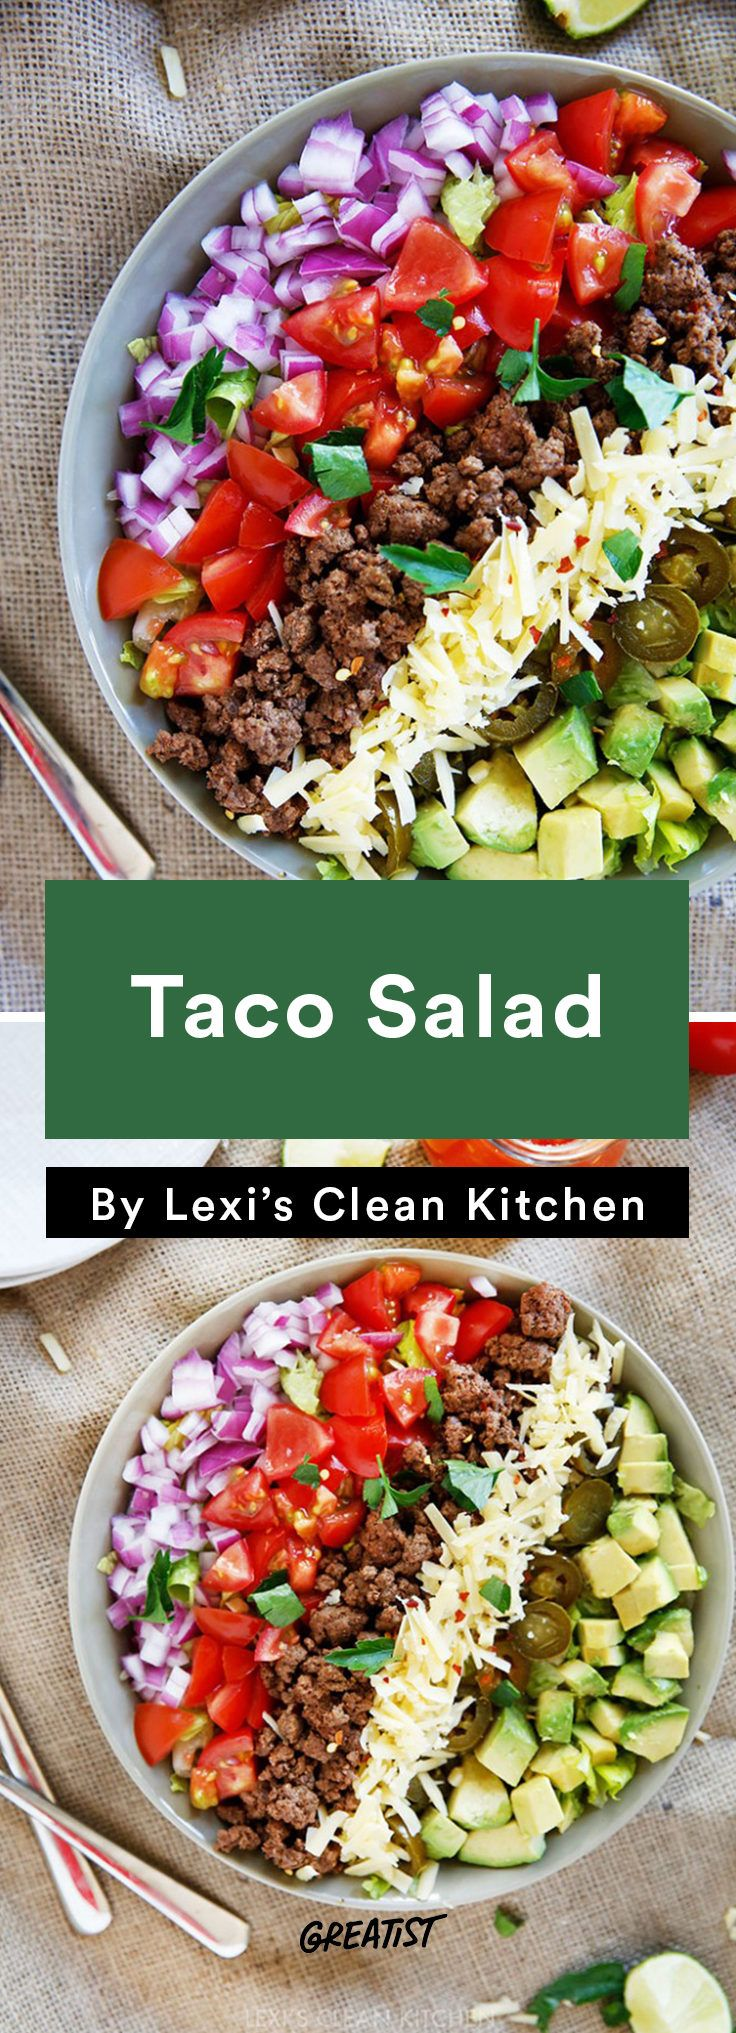 3. Taco Salad #greatist http://greatist.com/eat/easy-meals-to-freeze-for-later